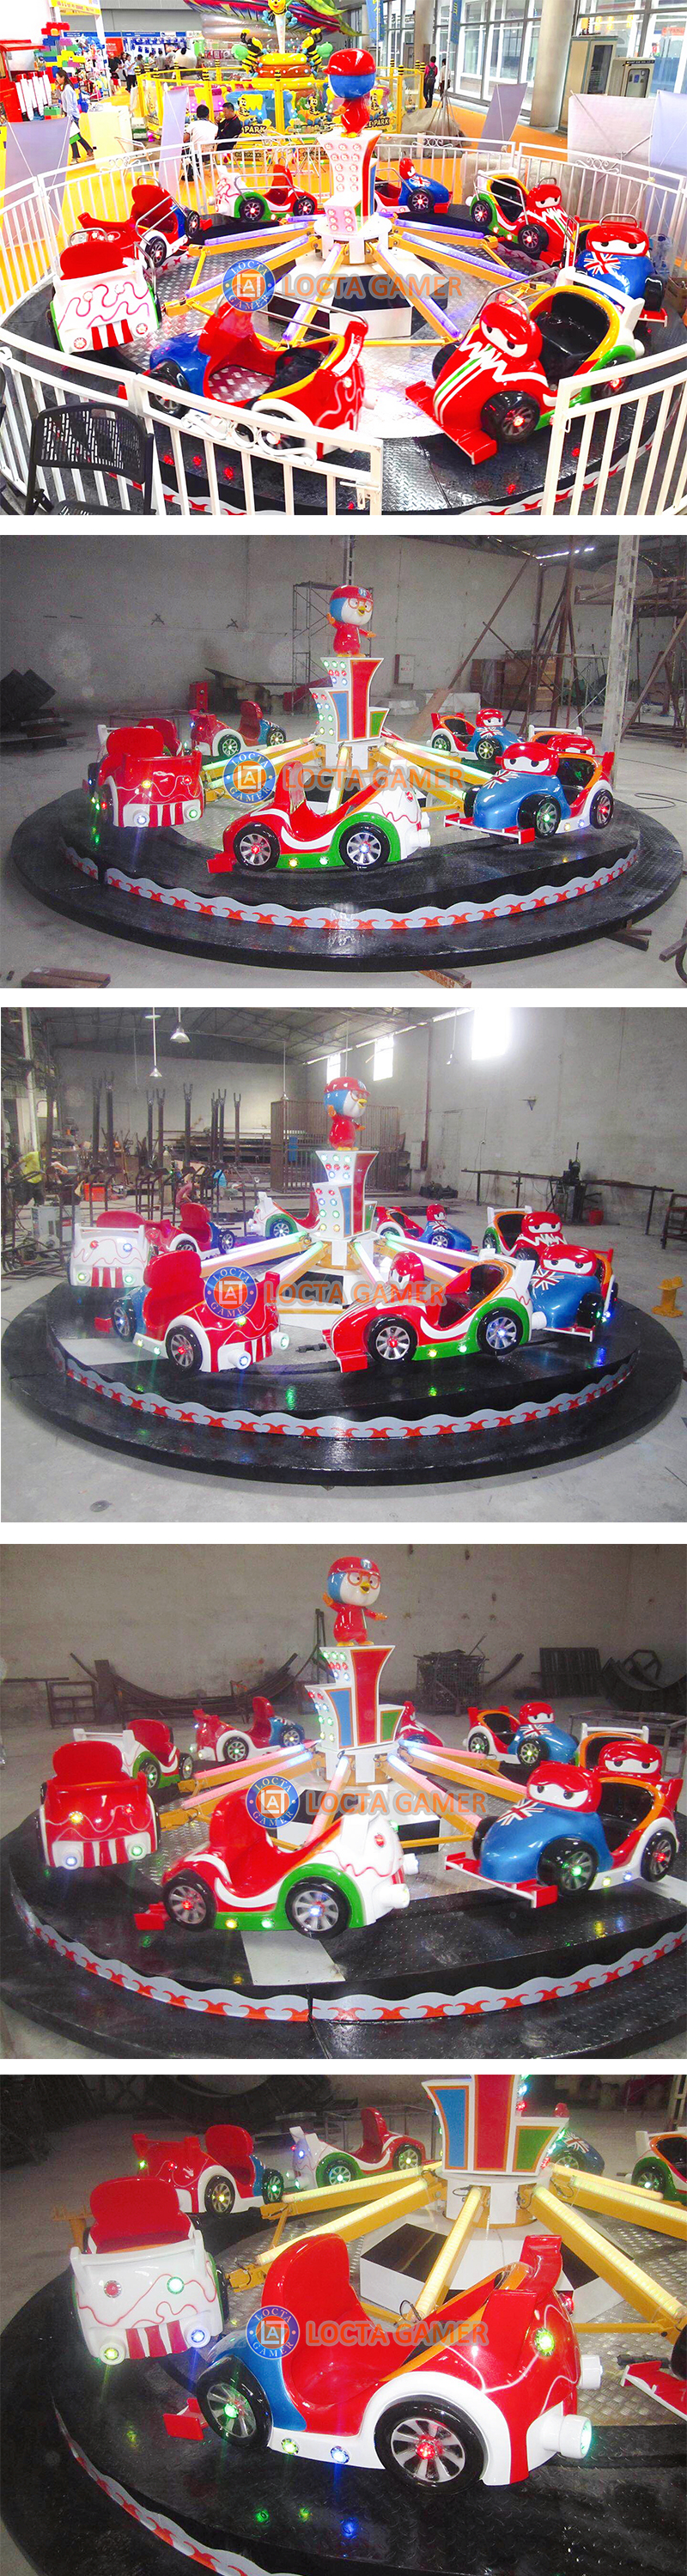 Zhongshan amusement park equipment rides convoy car ride for kid flying car game climbing train up and down